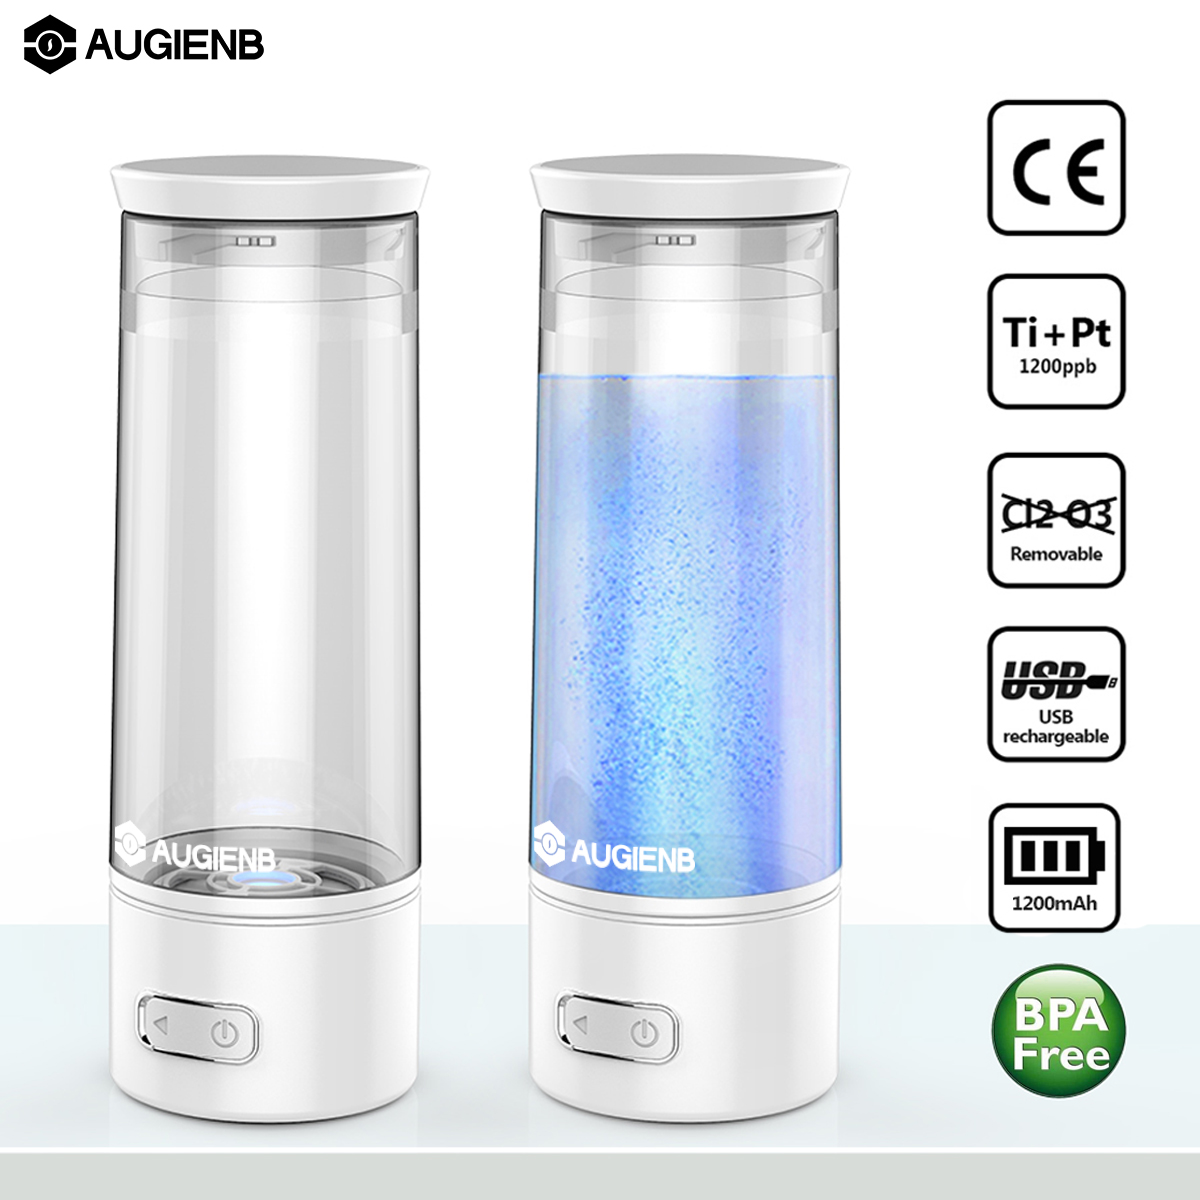 Augienb High-Rich Hydrogen Water Bottle Ionizer Generator Hydrogen Oxygen Separation Alkaline Energy Cup Filter USB Rechargable new arrival hydrogen generator hydrogen rich water machine hydrogen generating maker water filters ionizer 2 0l 100 240v 5w hot